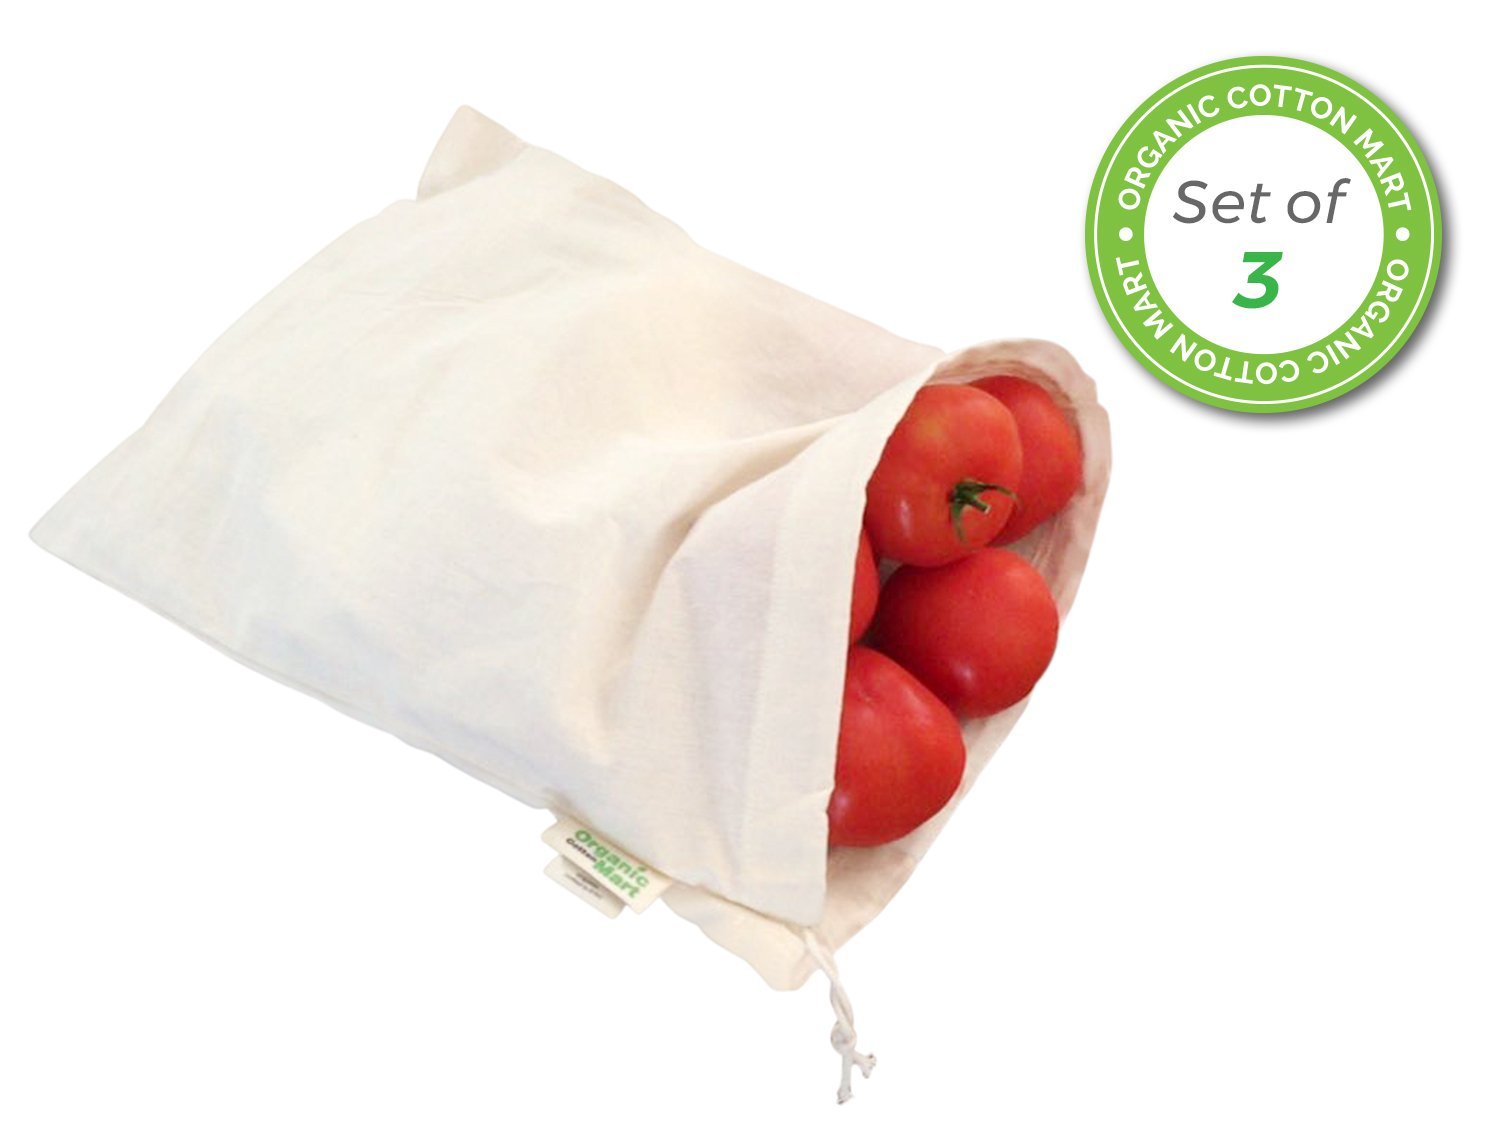 Reusable grocery bags for produce - Reusable Produce Bags Small - Small muslin bags for Brewing - Organic Cotton with Drawstring - Small Organic Tea Bag - Set of 3 (3, Small - 8''x10'')